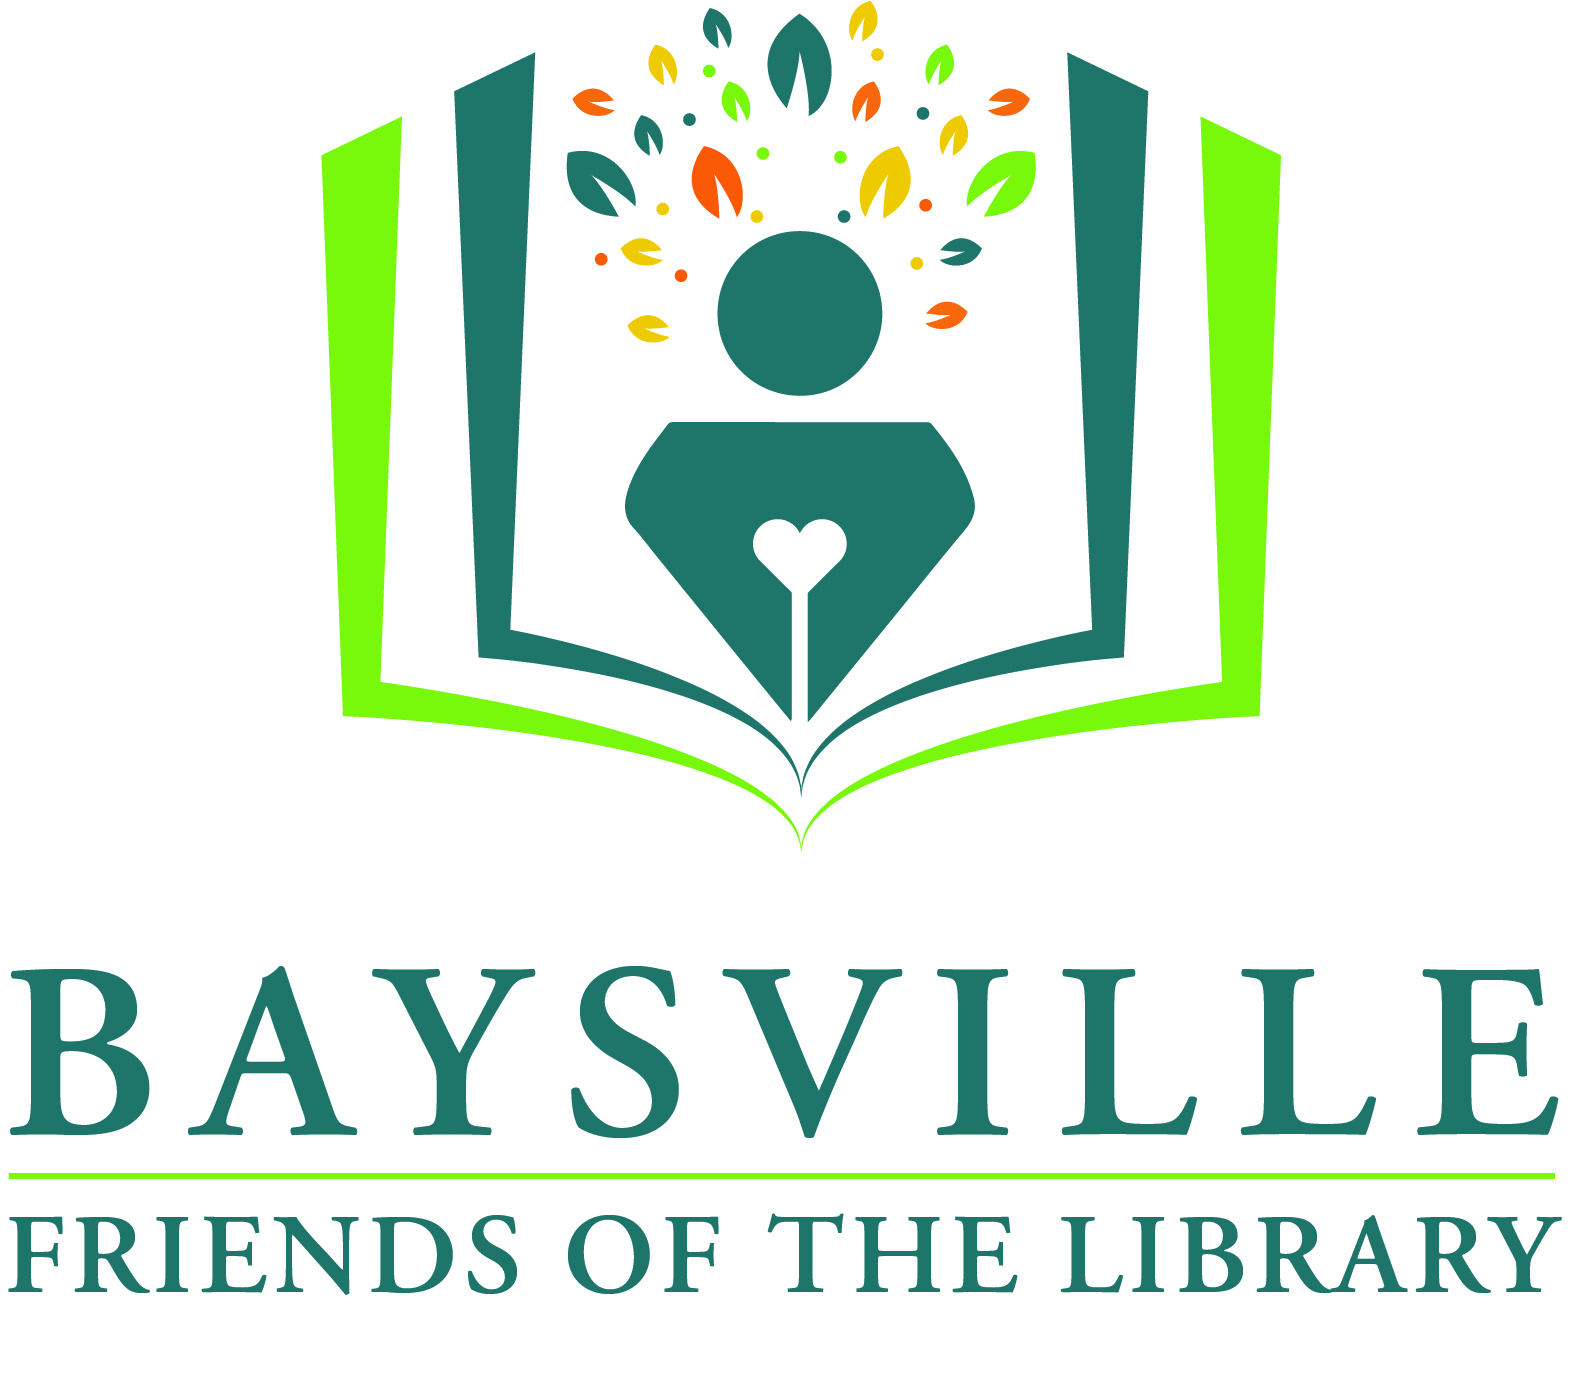 Baysville Friends of the Library logo